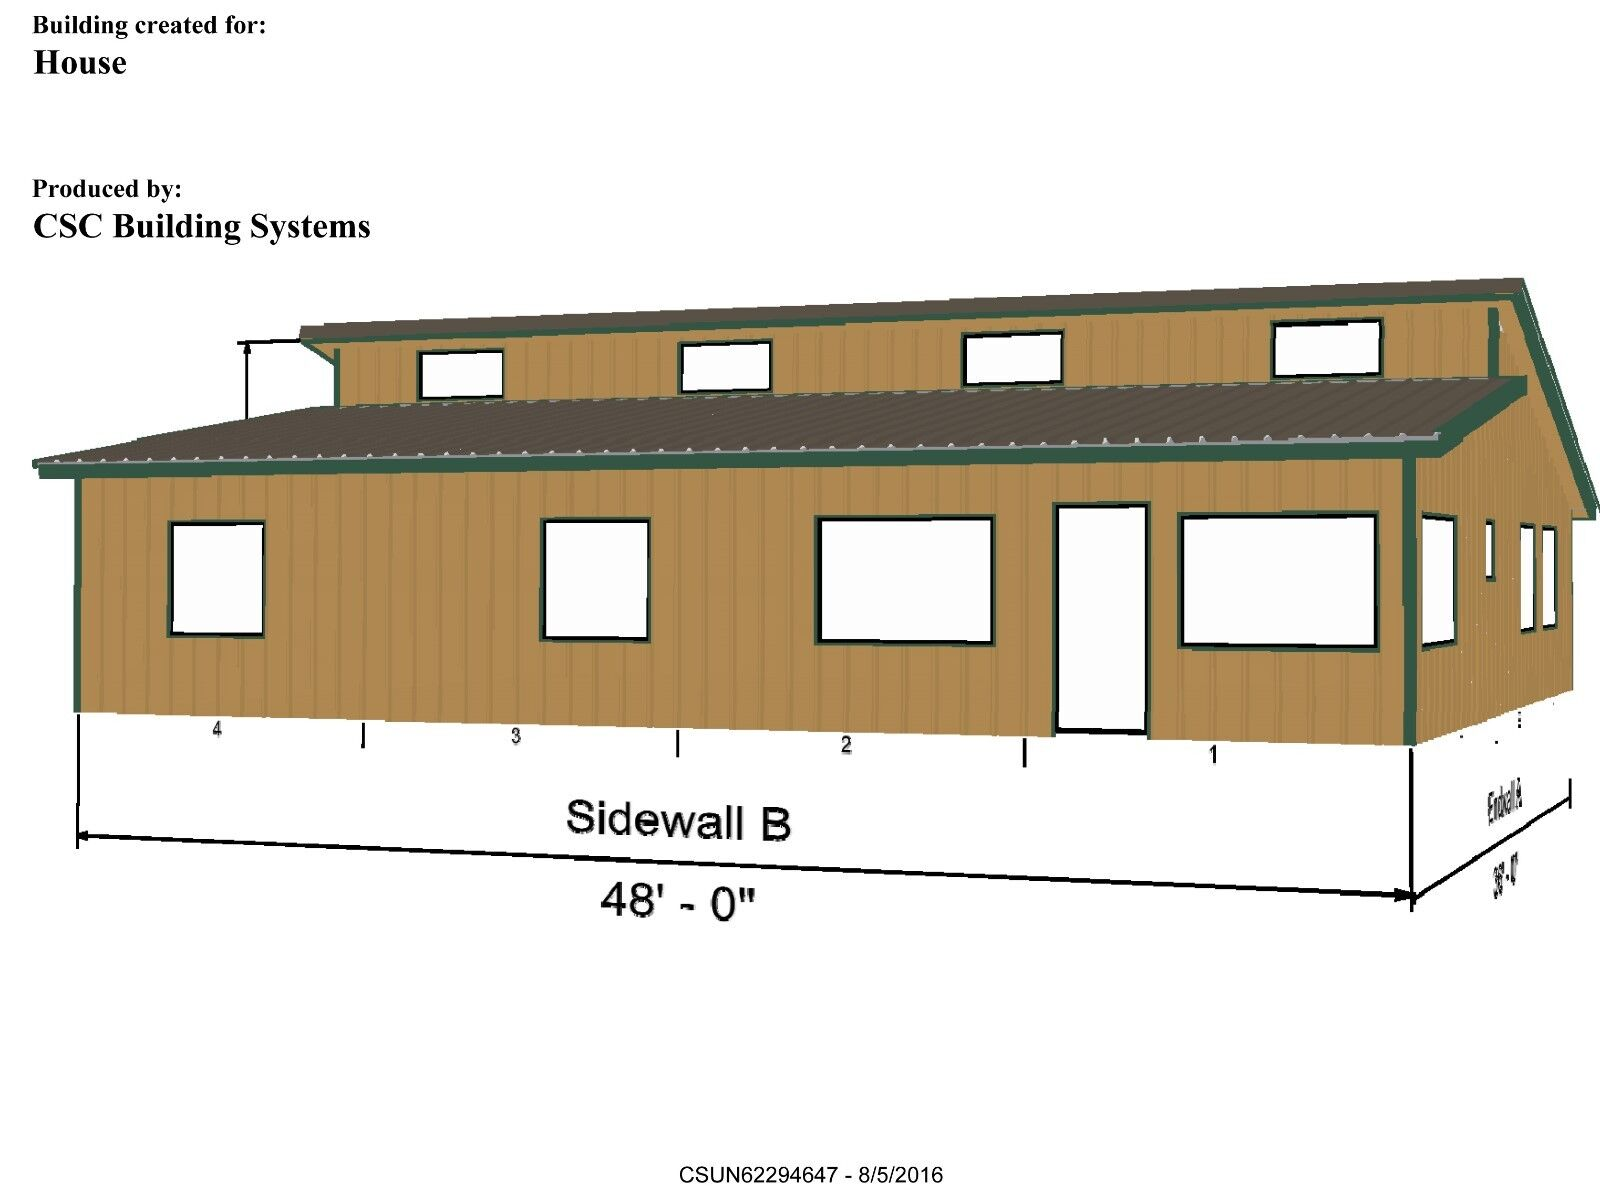 Steel Home Kit -CSC3648 - 3 BedR, 2 Bath, Inc. Roofing & Siding - 1728 sf living